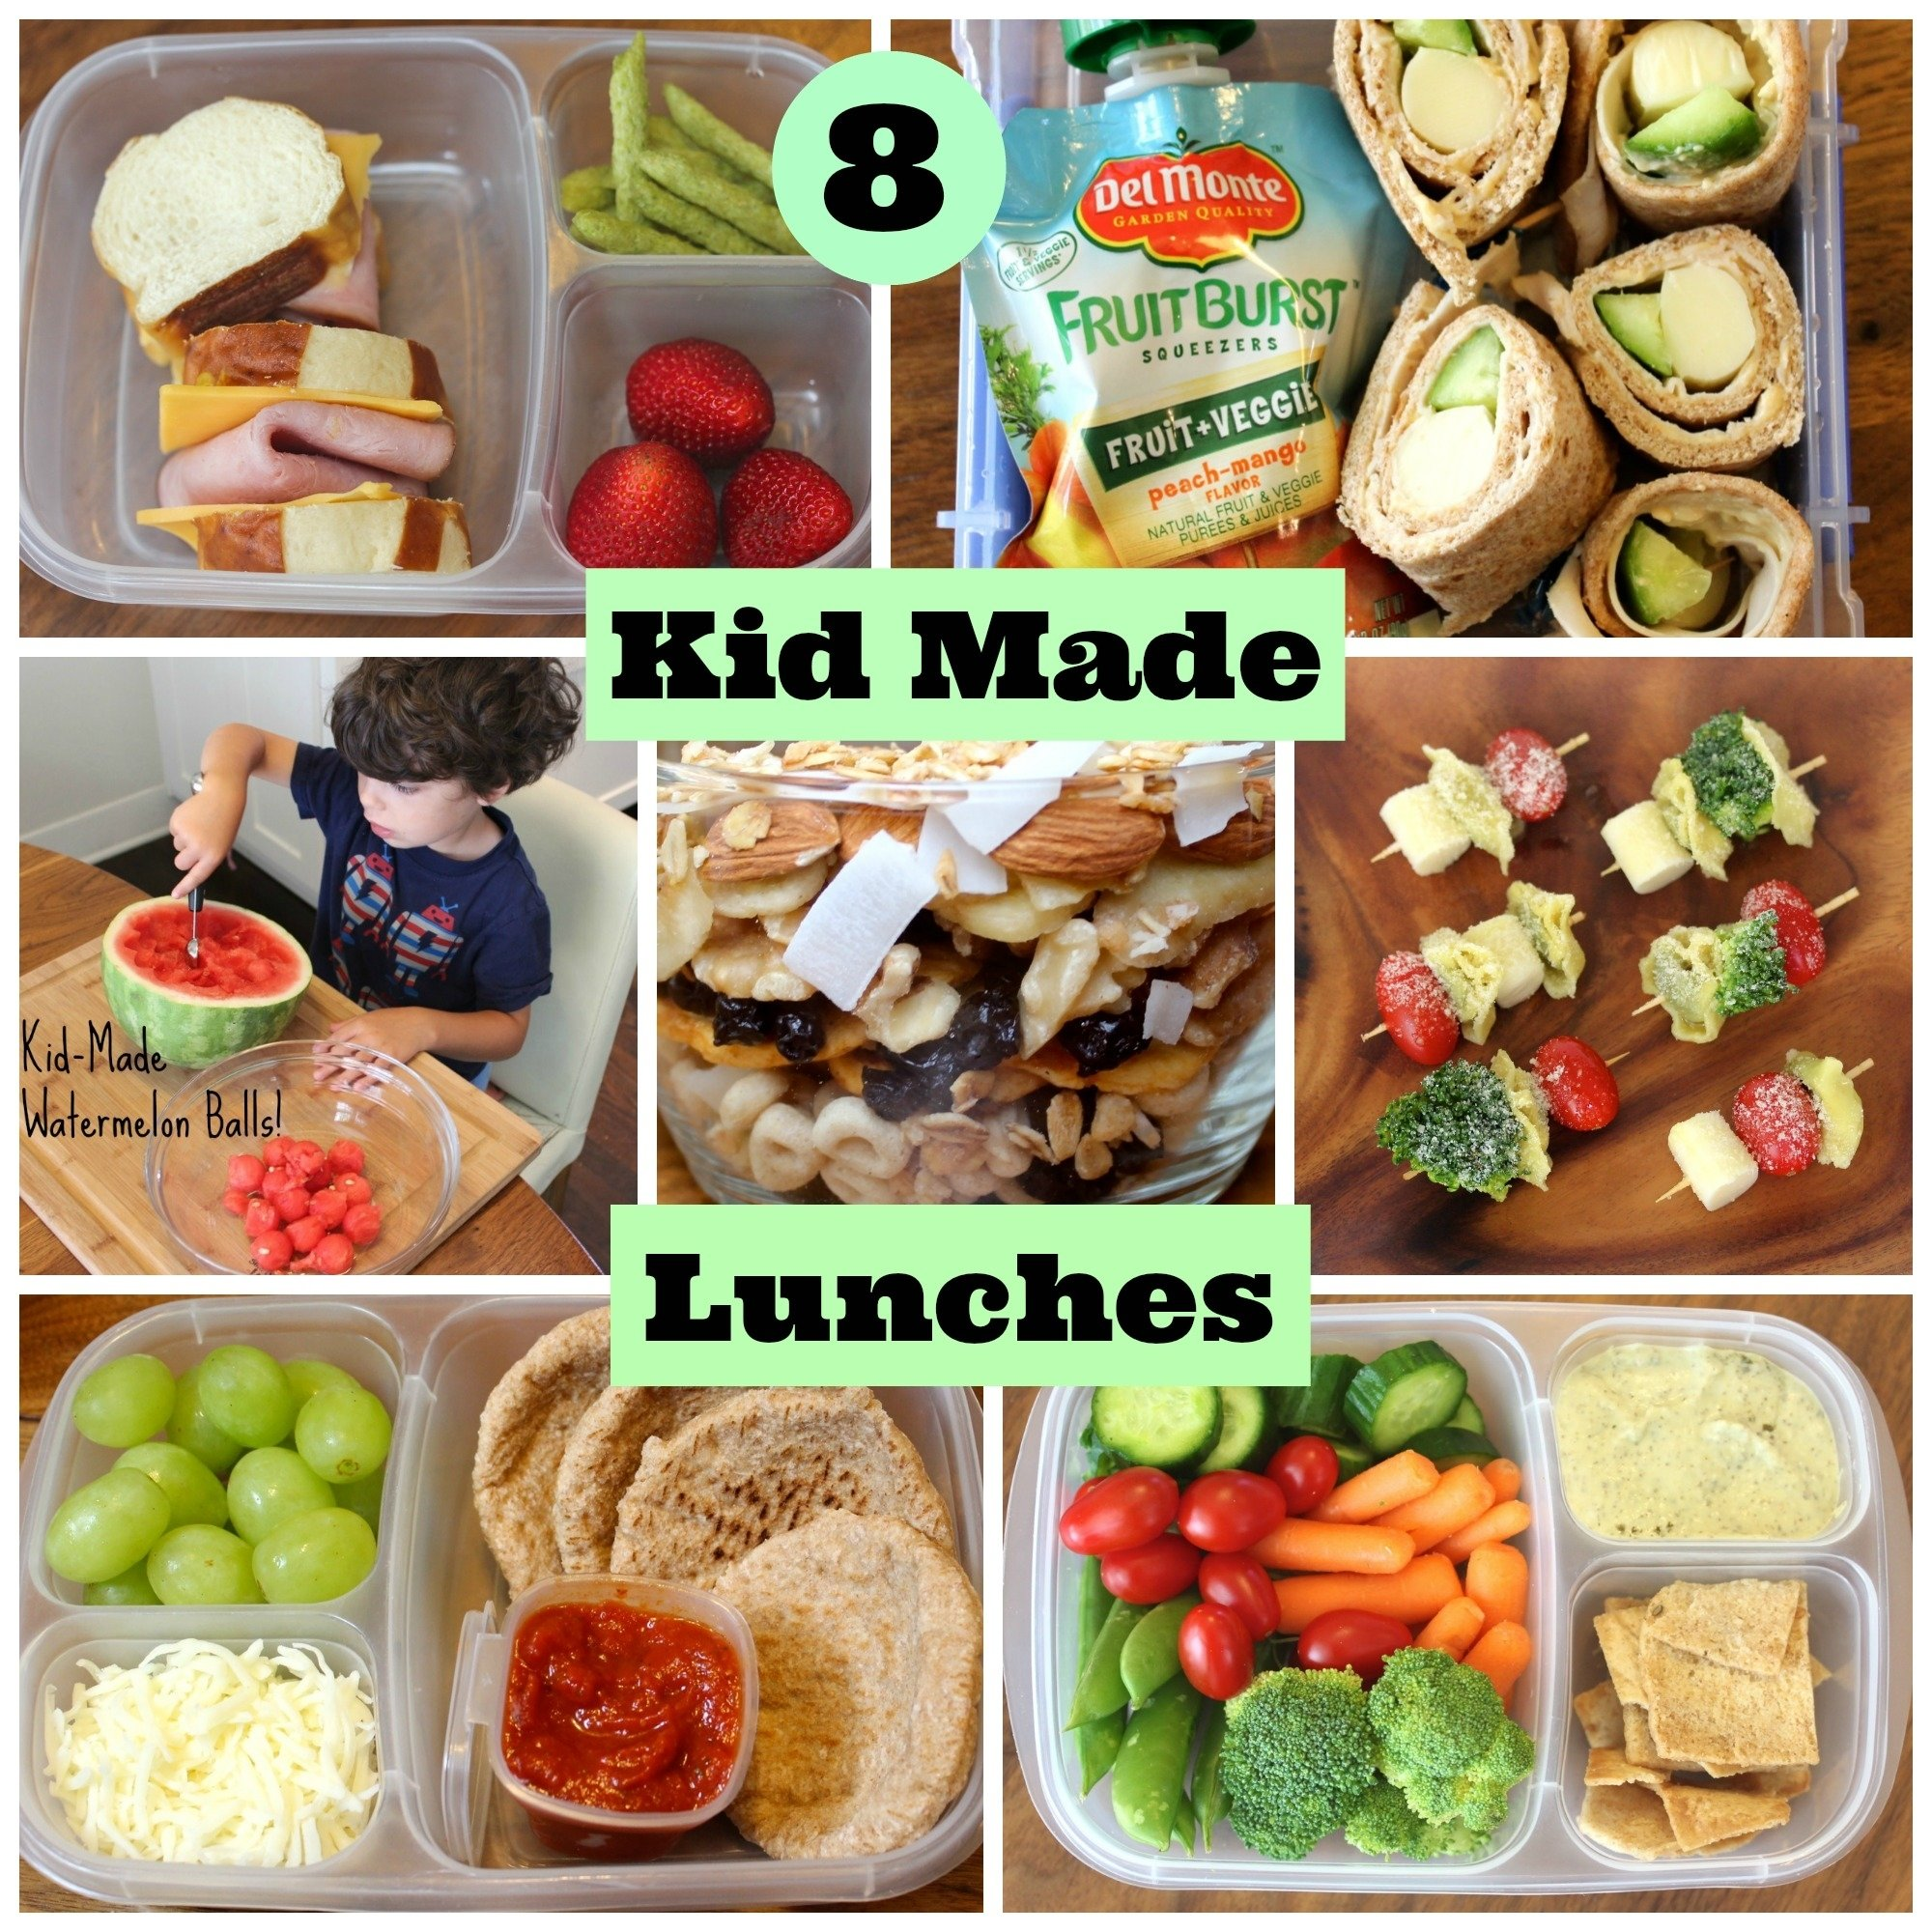 10 Perfect Kids Lunch Ideas For School 4 healthy school lunches your kids can make themselves babble 12